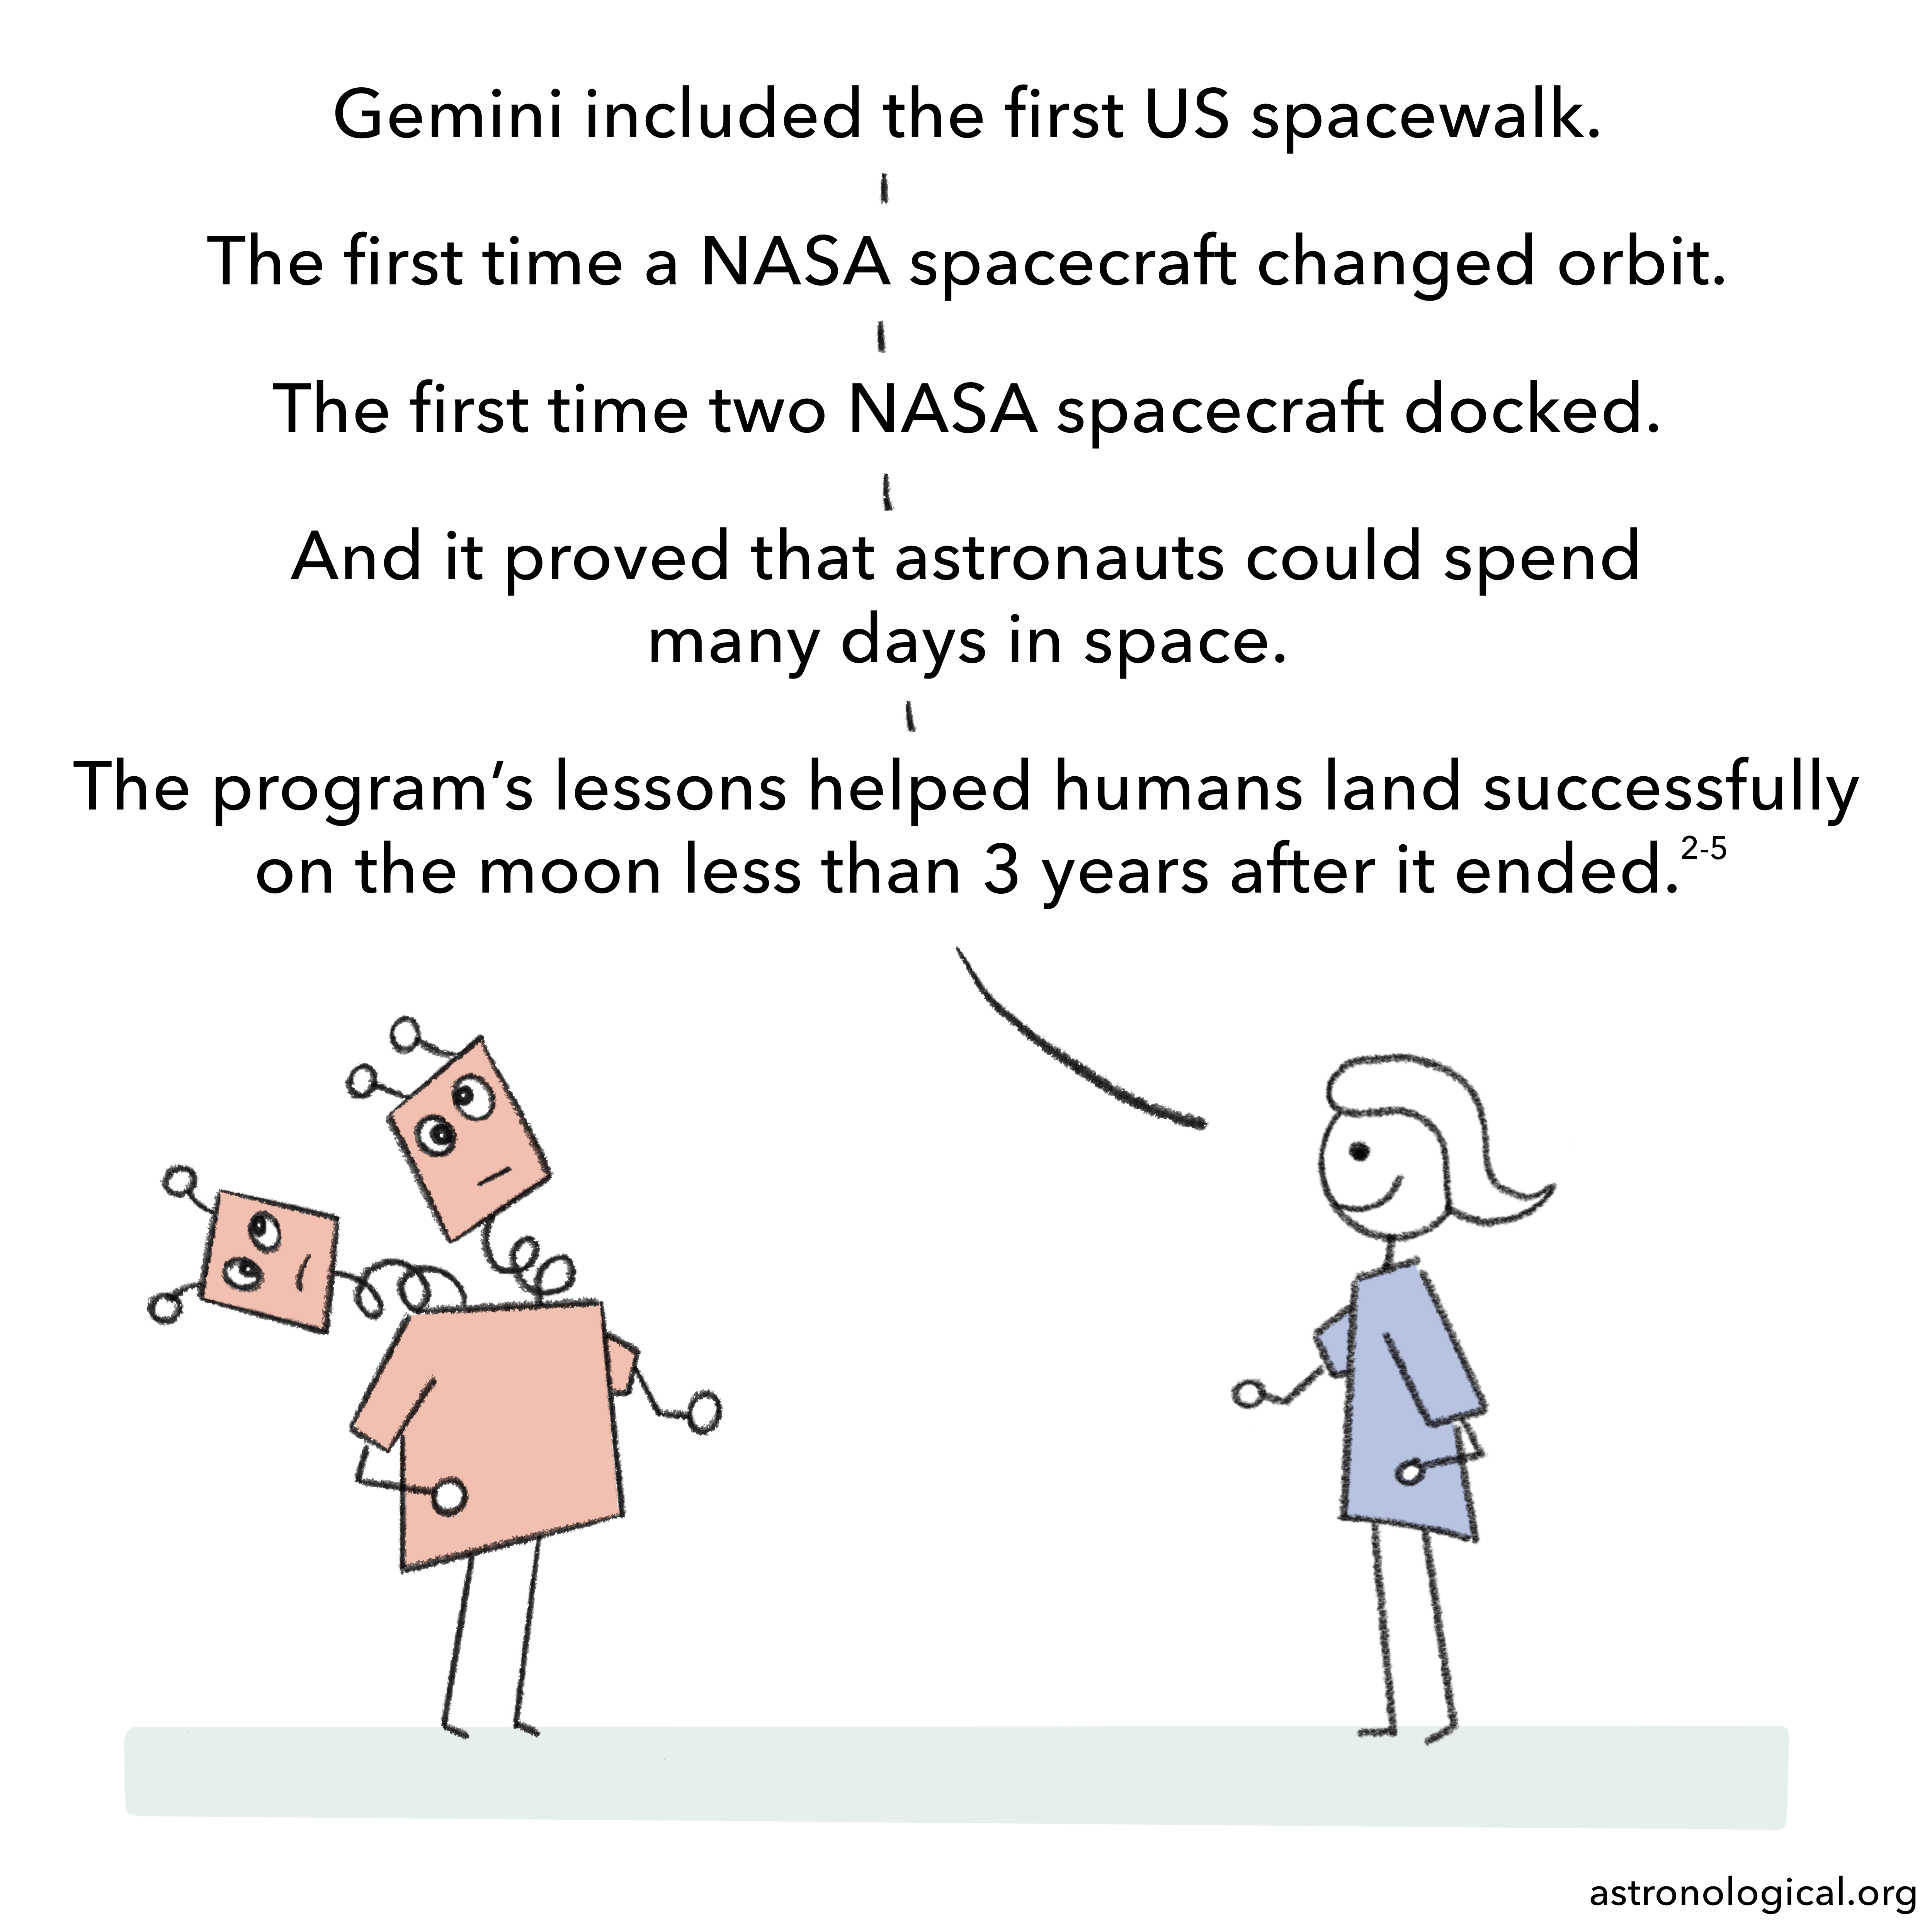 The girl enthusiastically explains to the twins that: Gemini included the first US spacewalk. The first time a NASA spacecraft changed orbit. The first time two NASA spacecraft docked. And it proved that astronauts could spend many days in space. The program's lessons helped humans land successfully on the moon less than 3 years after it ended. The twins' faces are looking increasingly cross-eyed, goofy and confused.